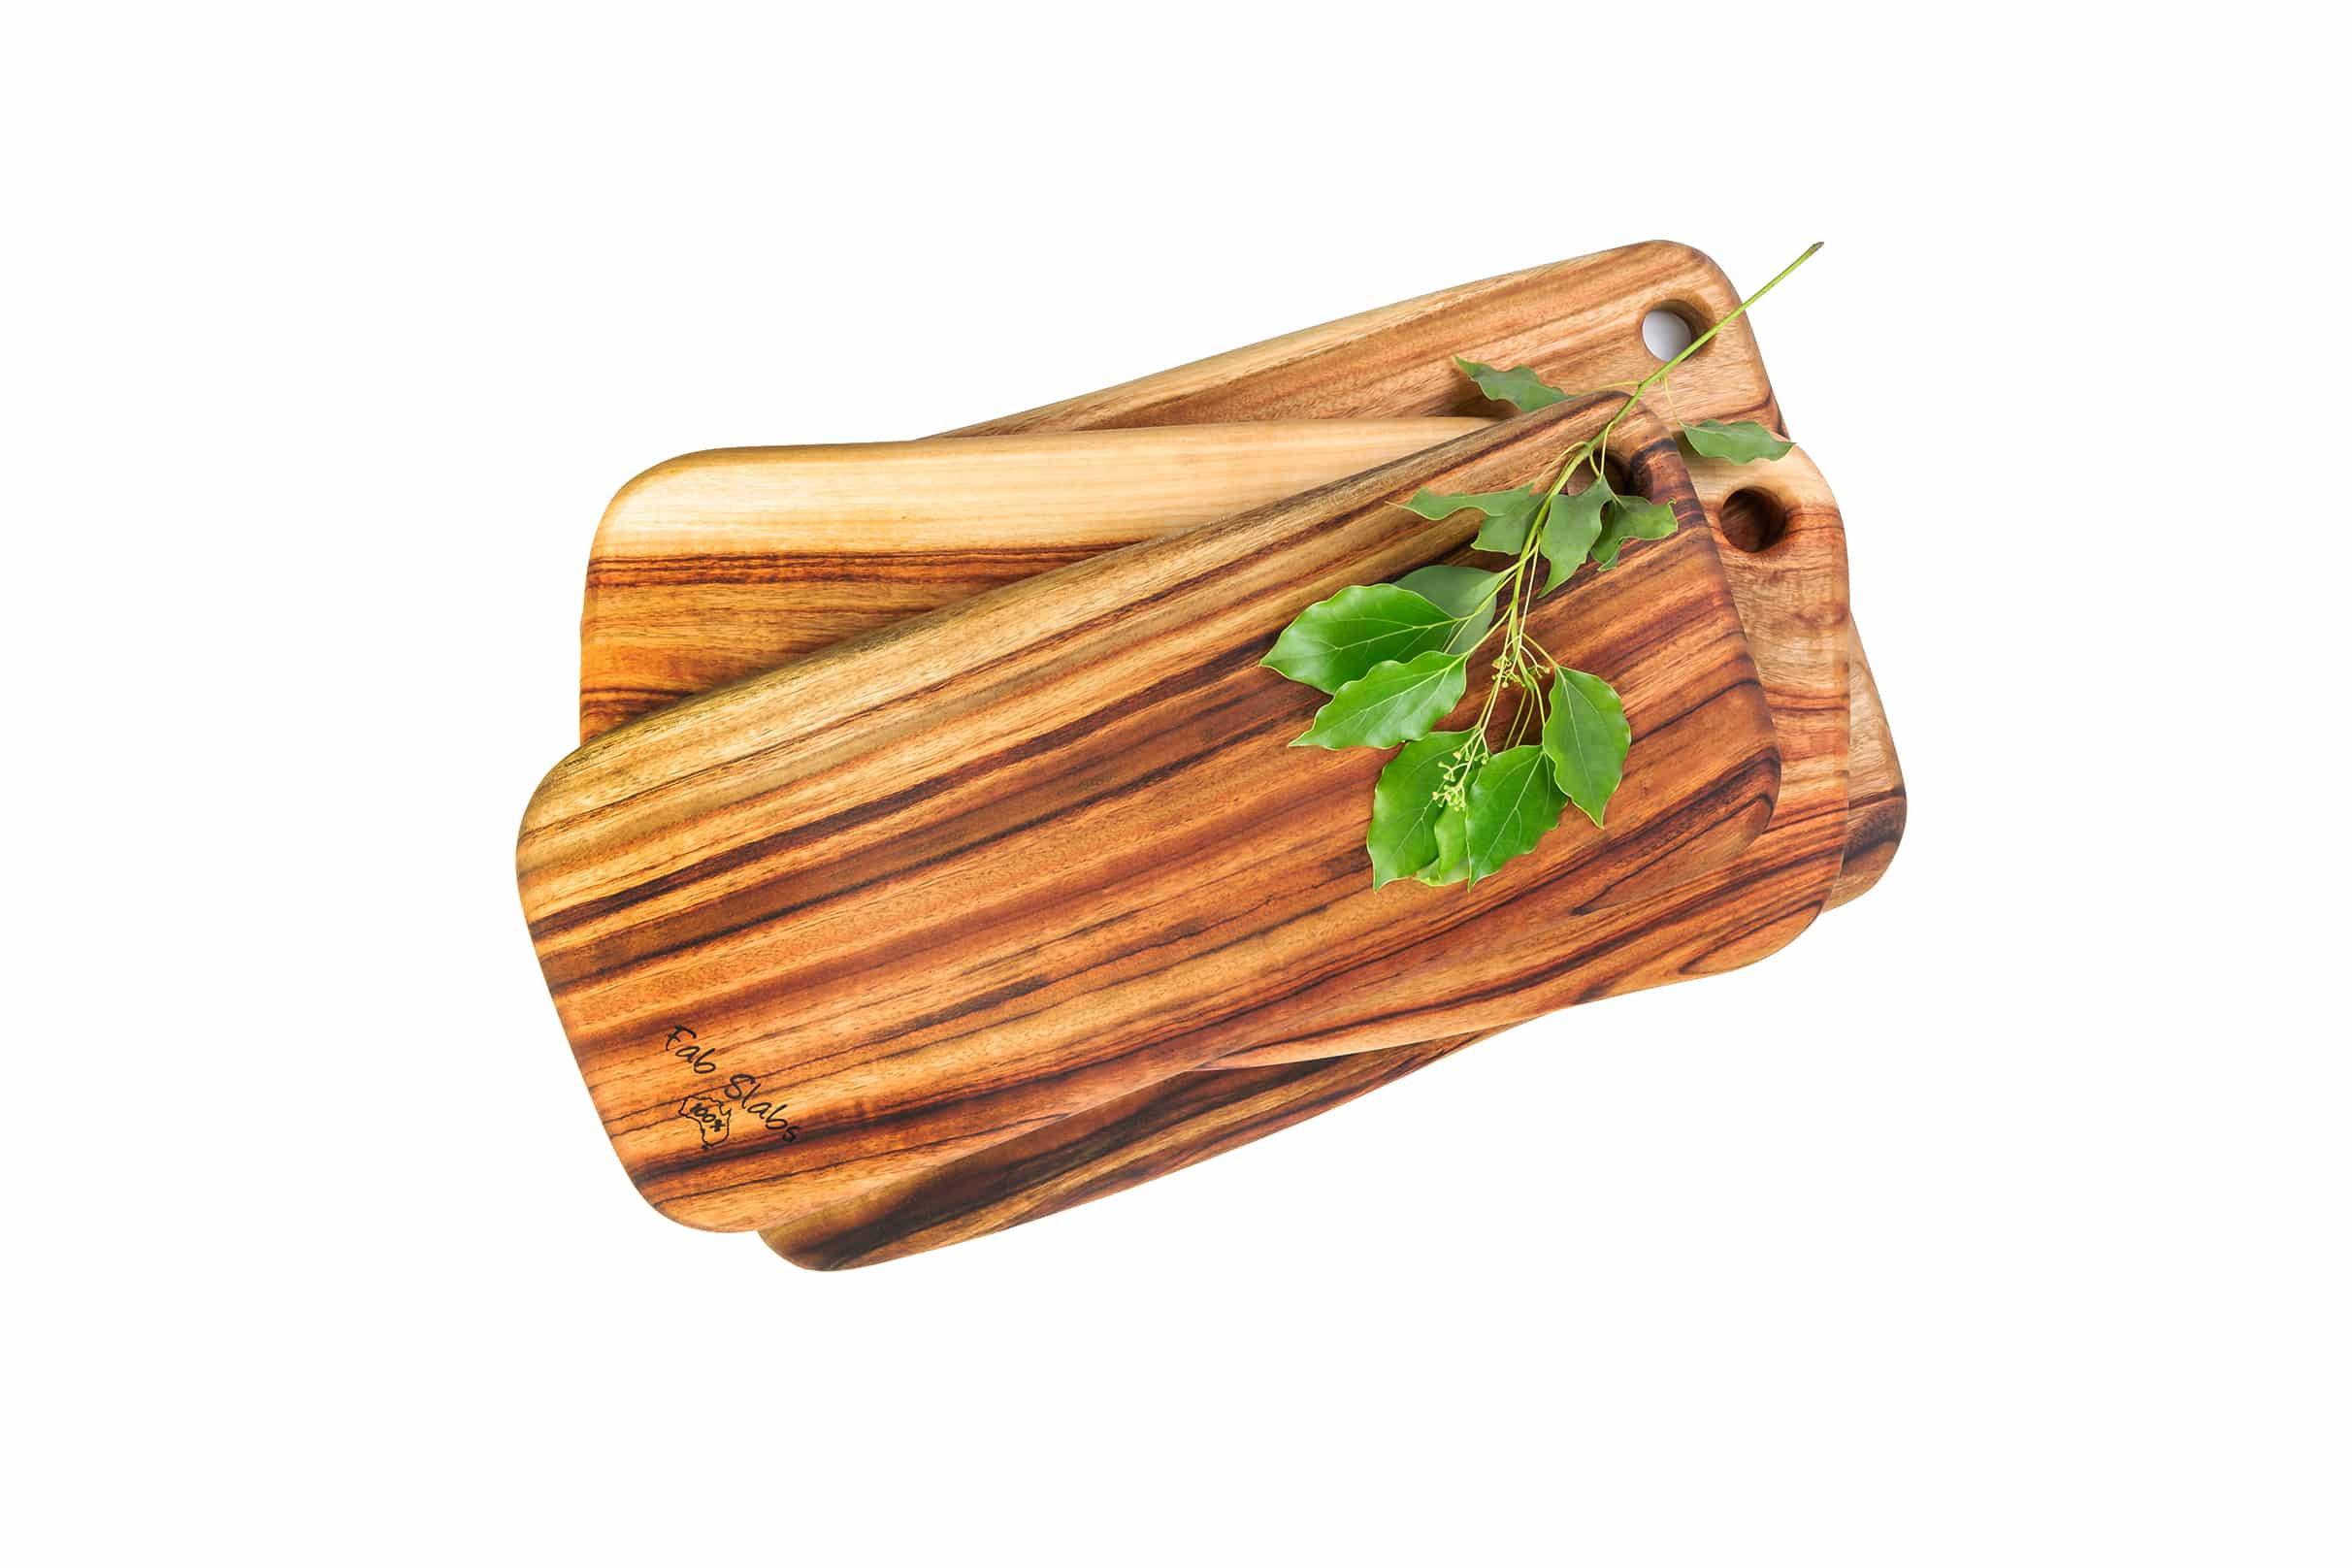 Become a distributor of our cutting boards